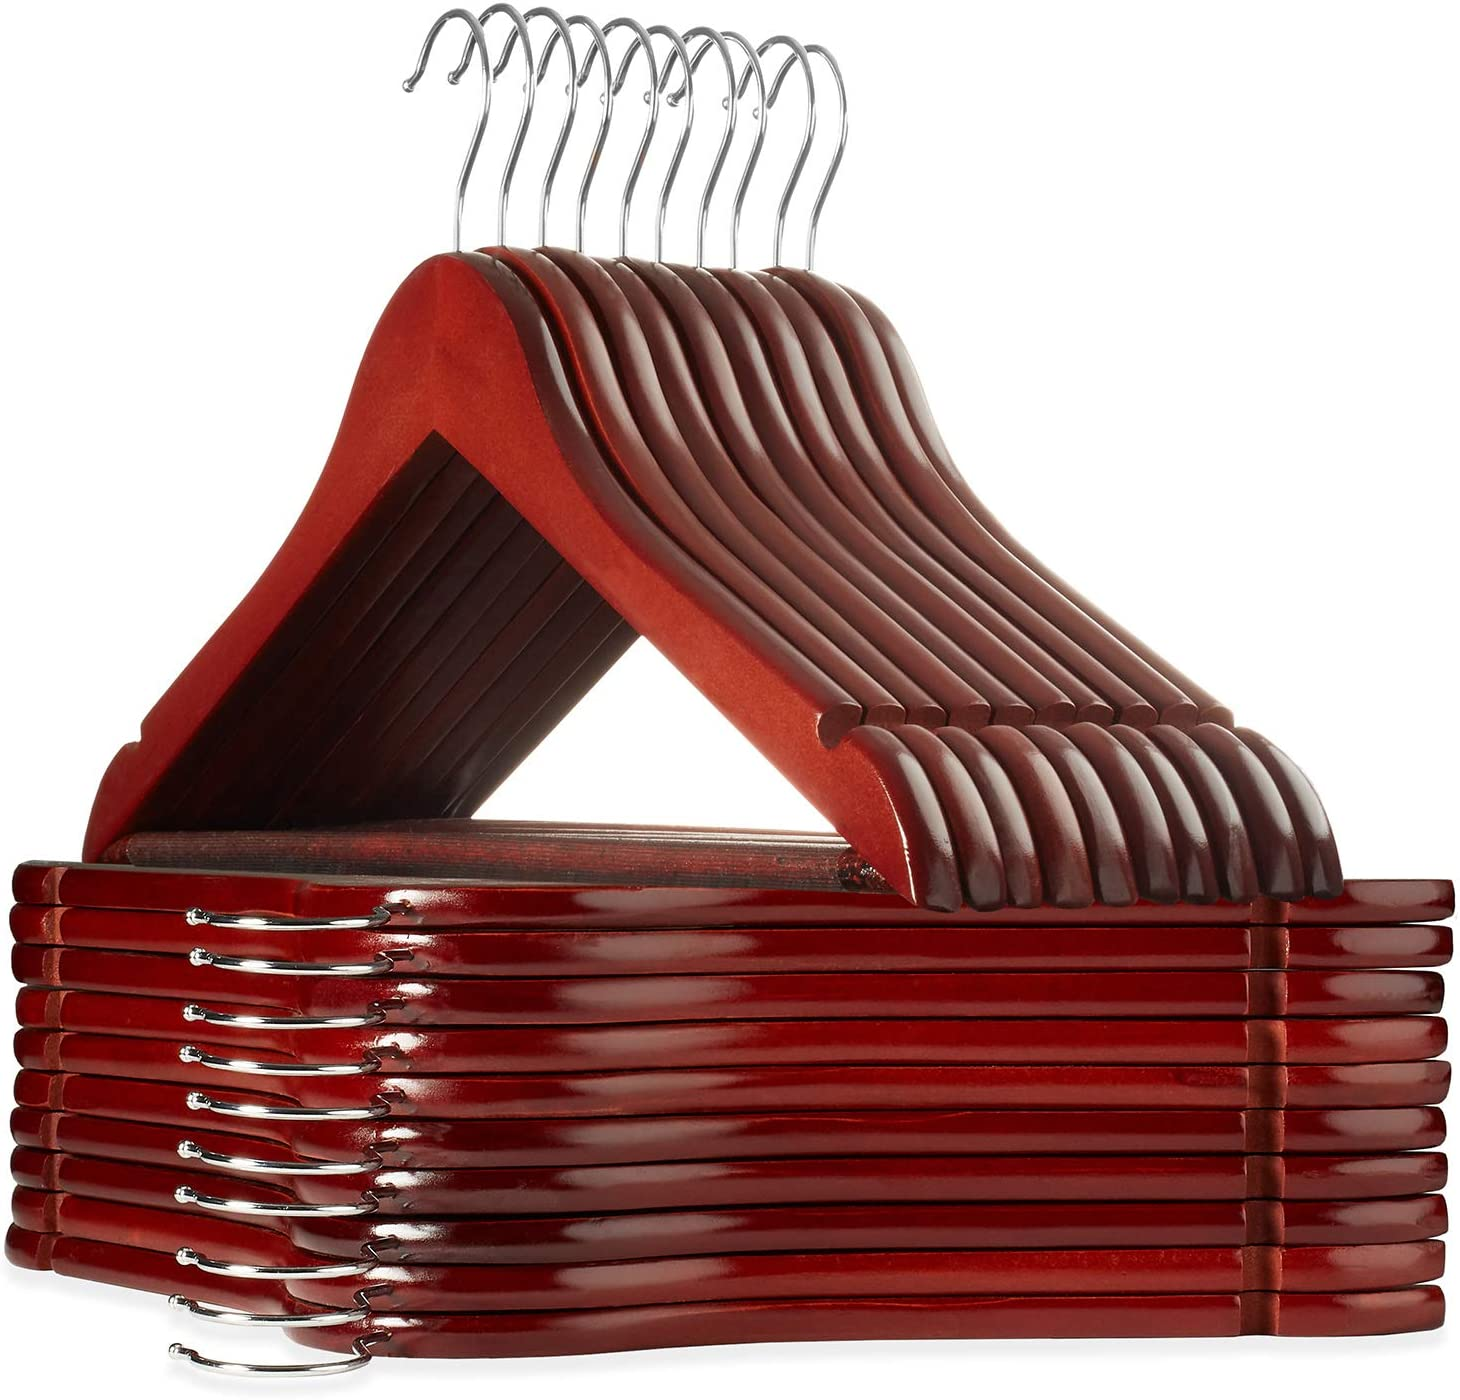 Casafield - 20 Cherry Wooden A Genuine surprise price is realized Suit Premium w Hangers Wood Lotus